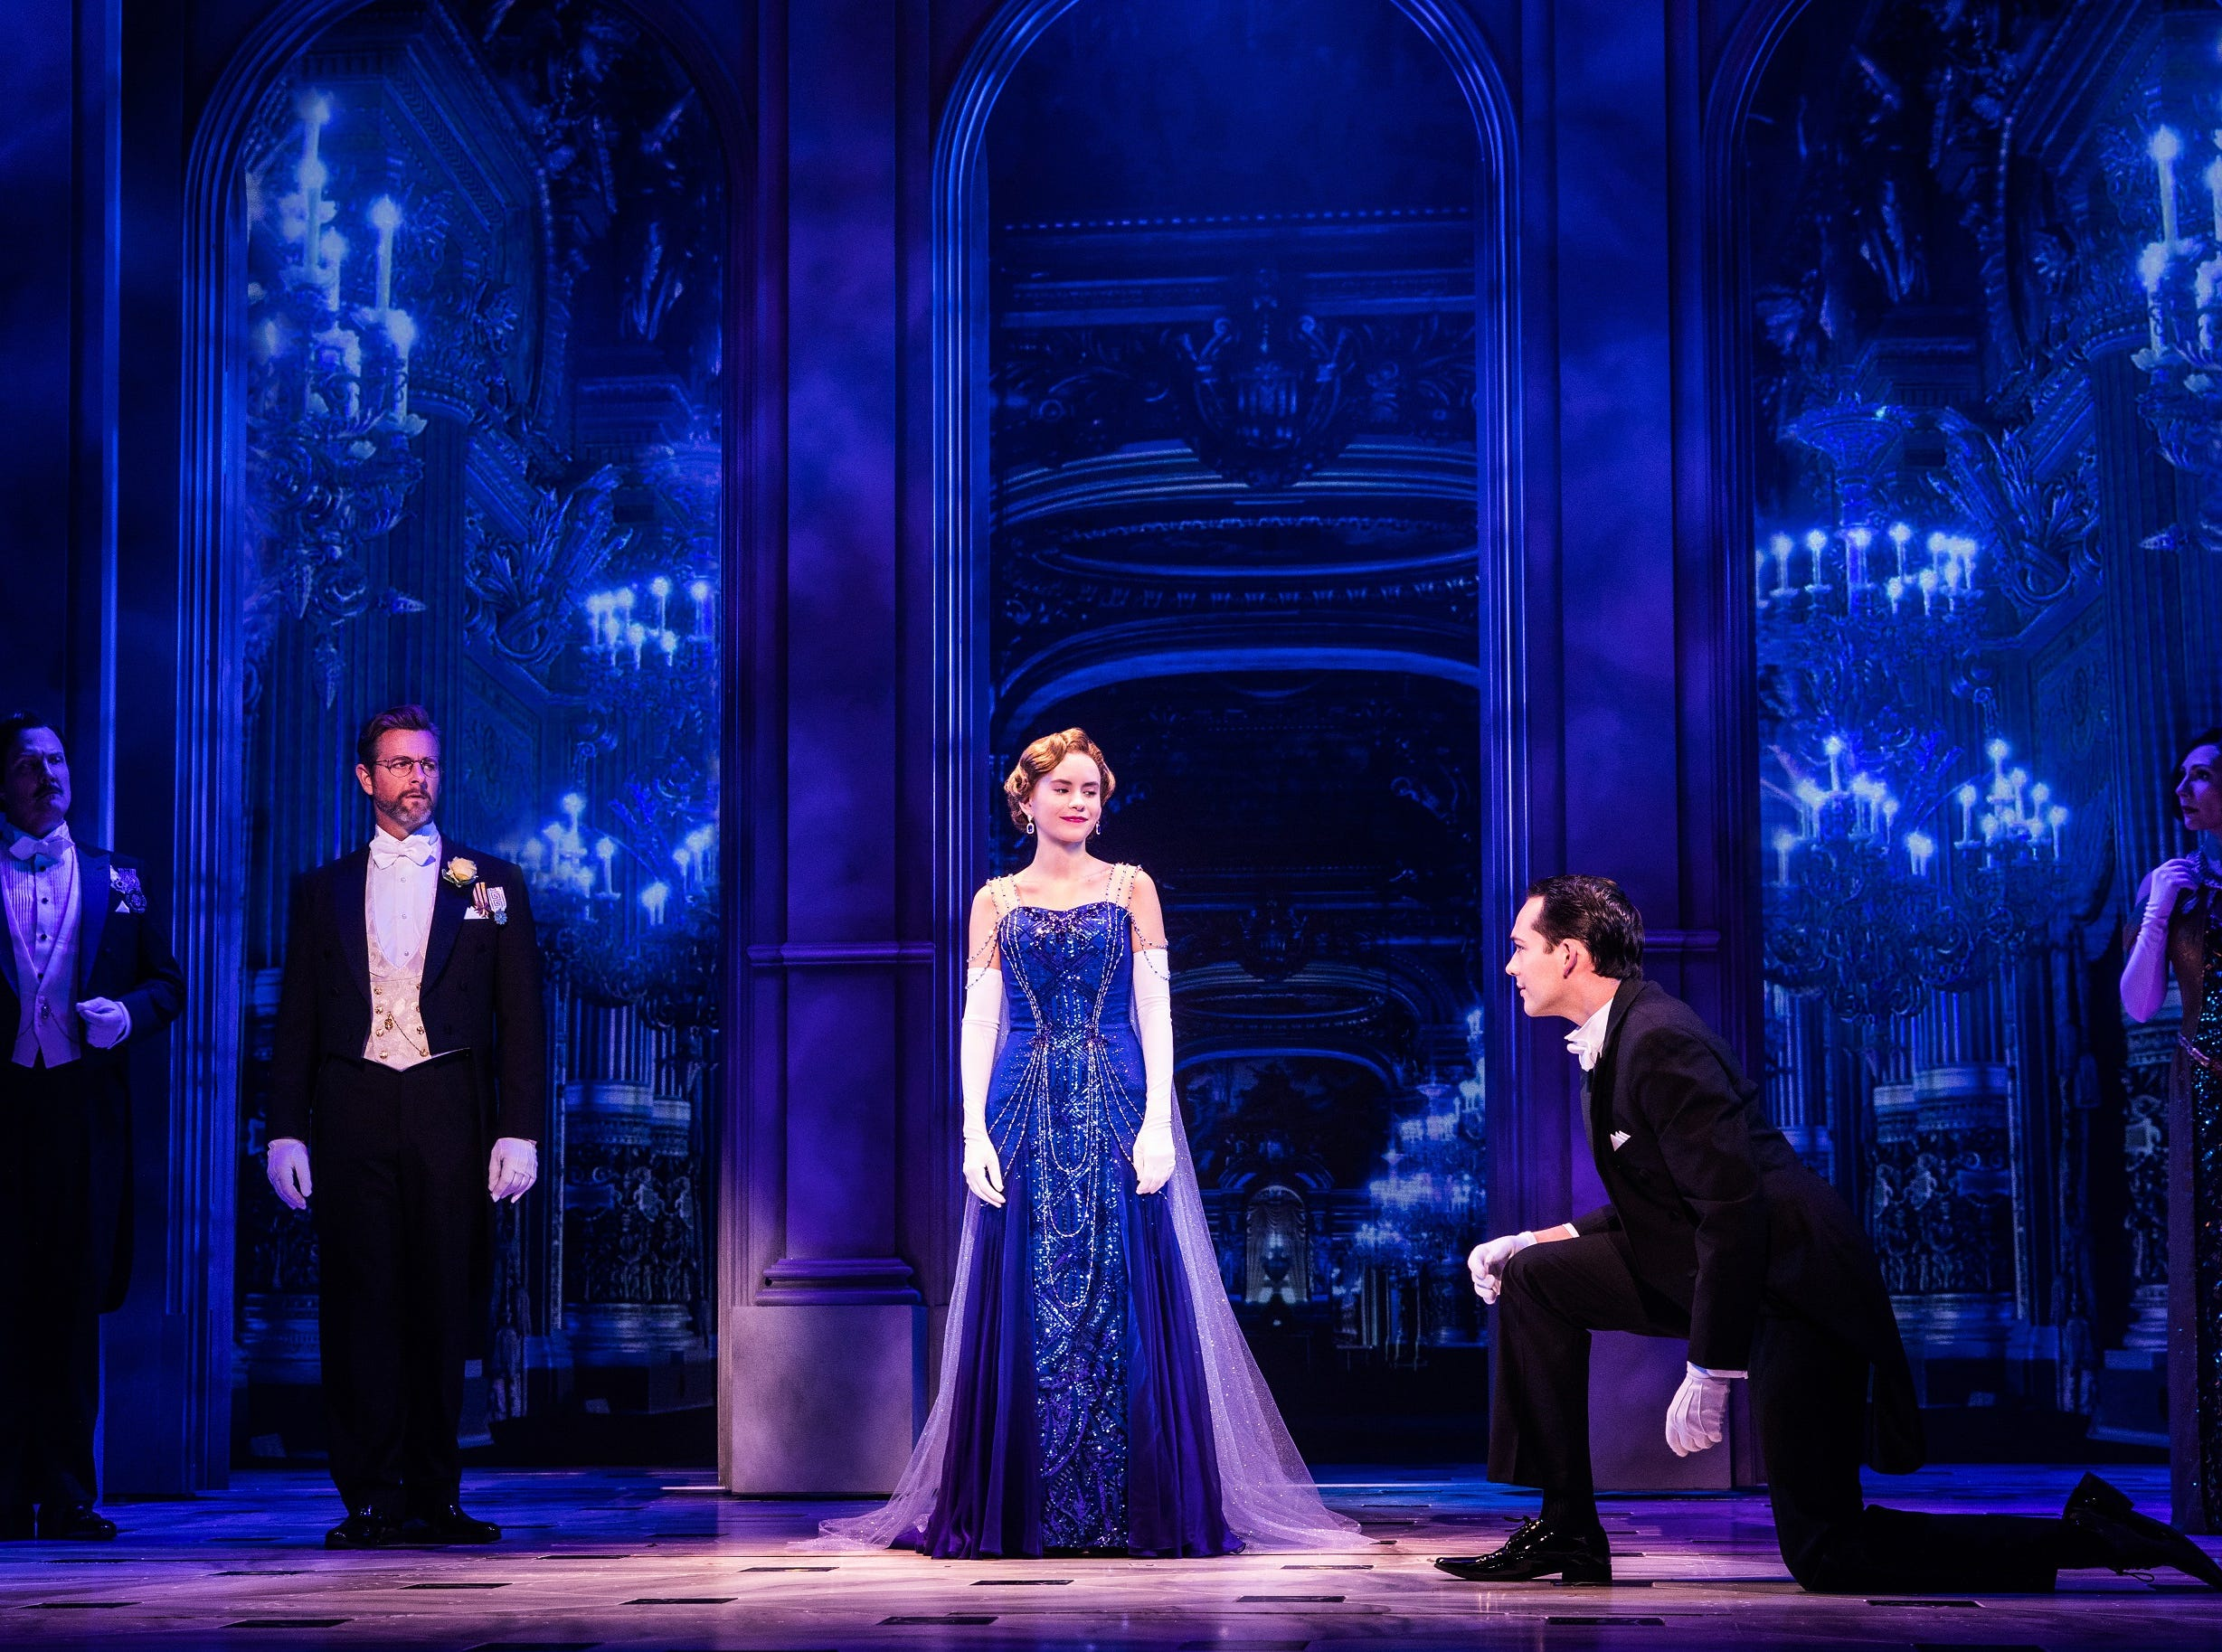 """Lila Coogan (C) plays the title role in the national tour of """"Anastasia,"""" which was part of the 2019-2020 subscription season announced Thursday by Broadway in Cincinnati."""